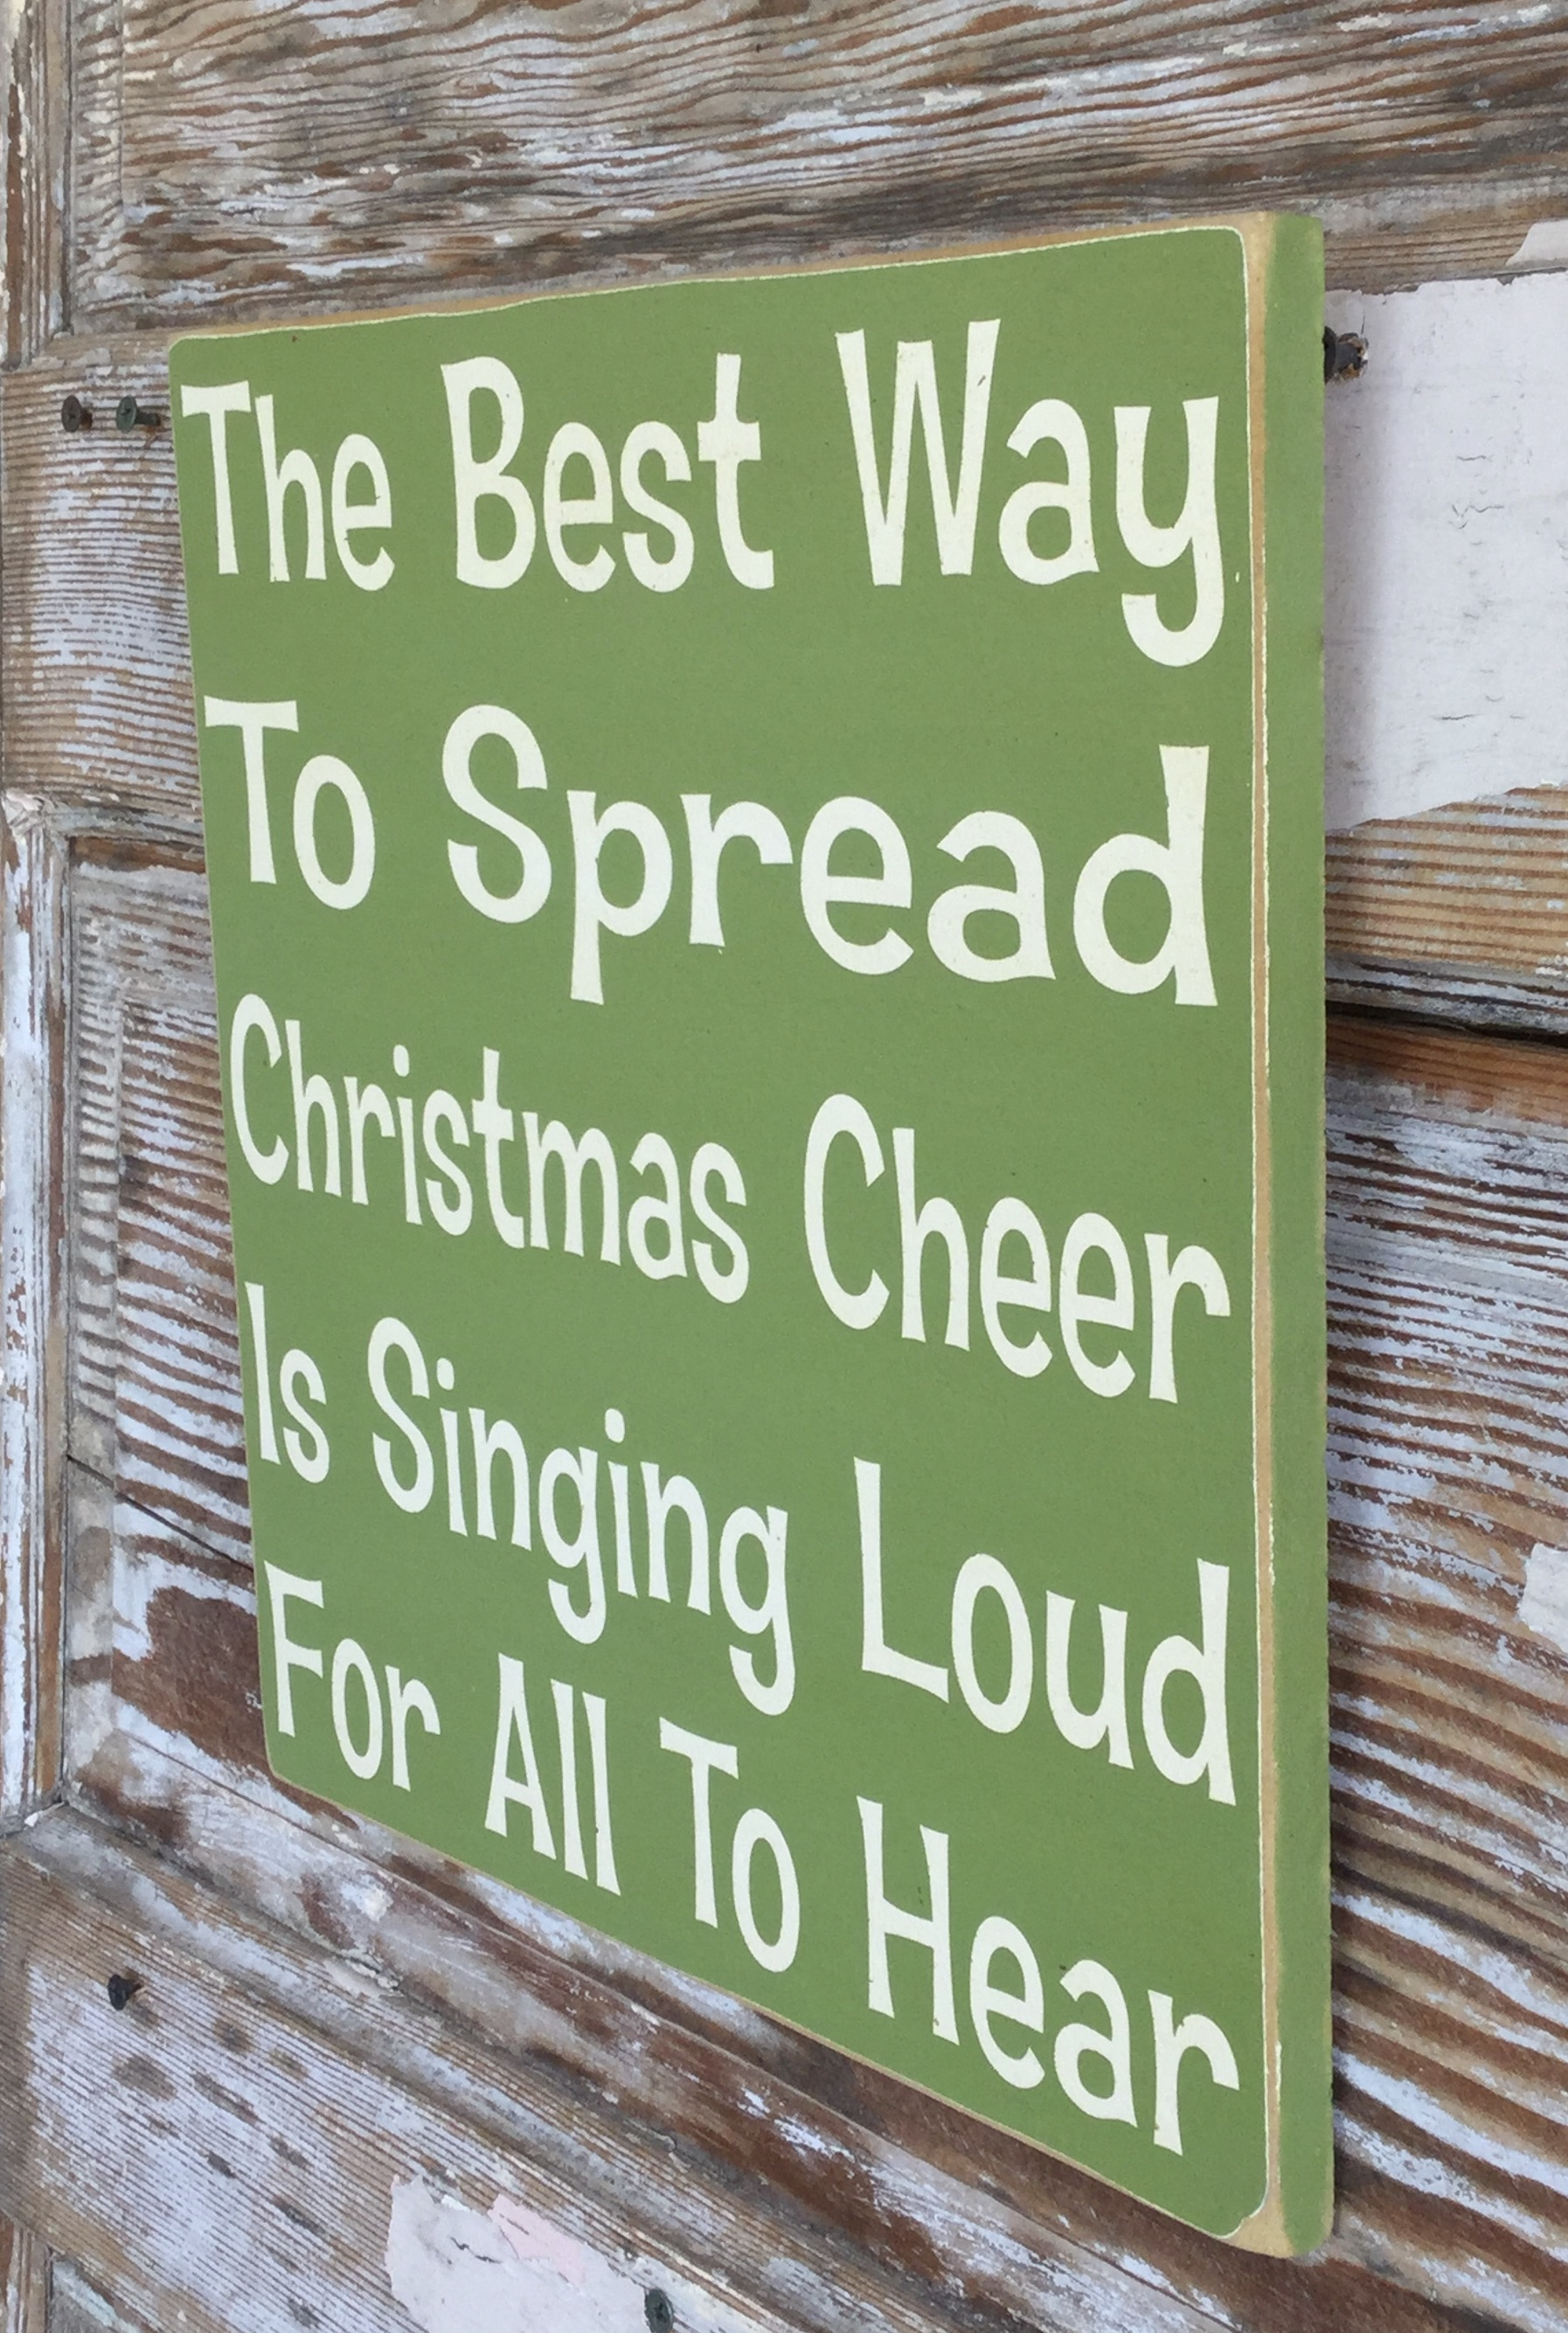 The Best Way To Spread Christmas Cheer.The Best Way To Spread Christmas Cheer Is Singing Loud For All To Hear Wood Sign